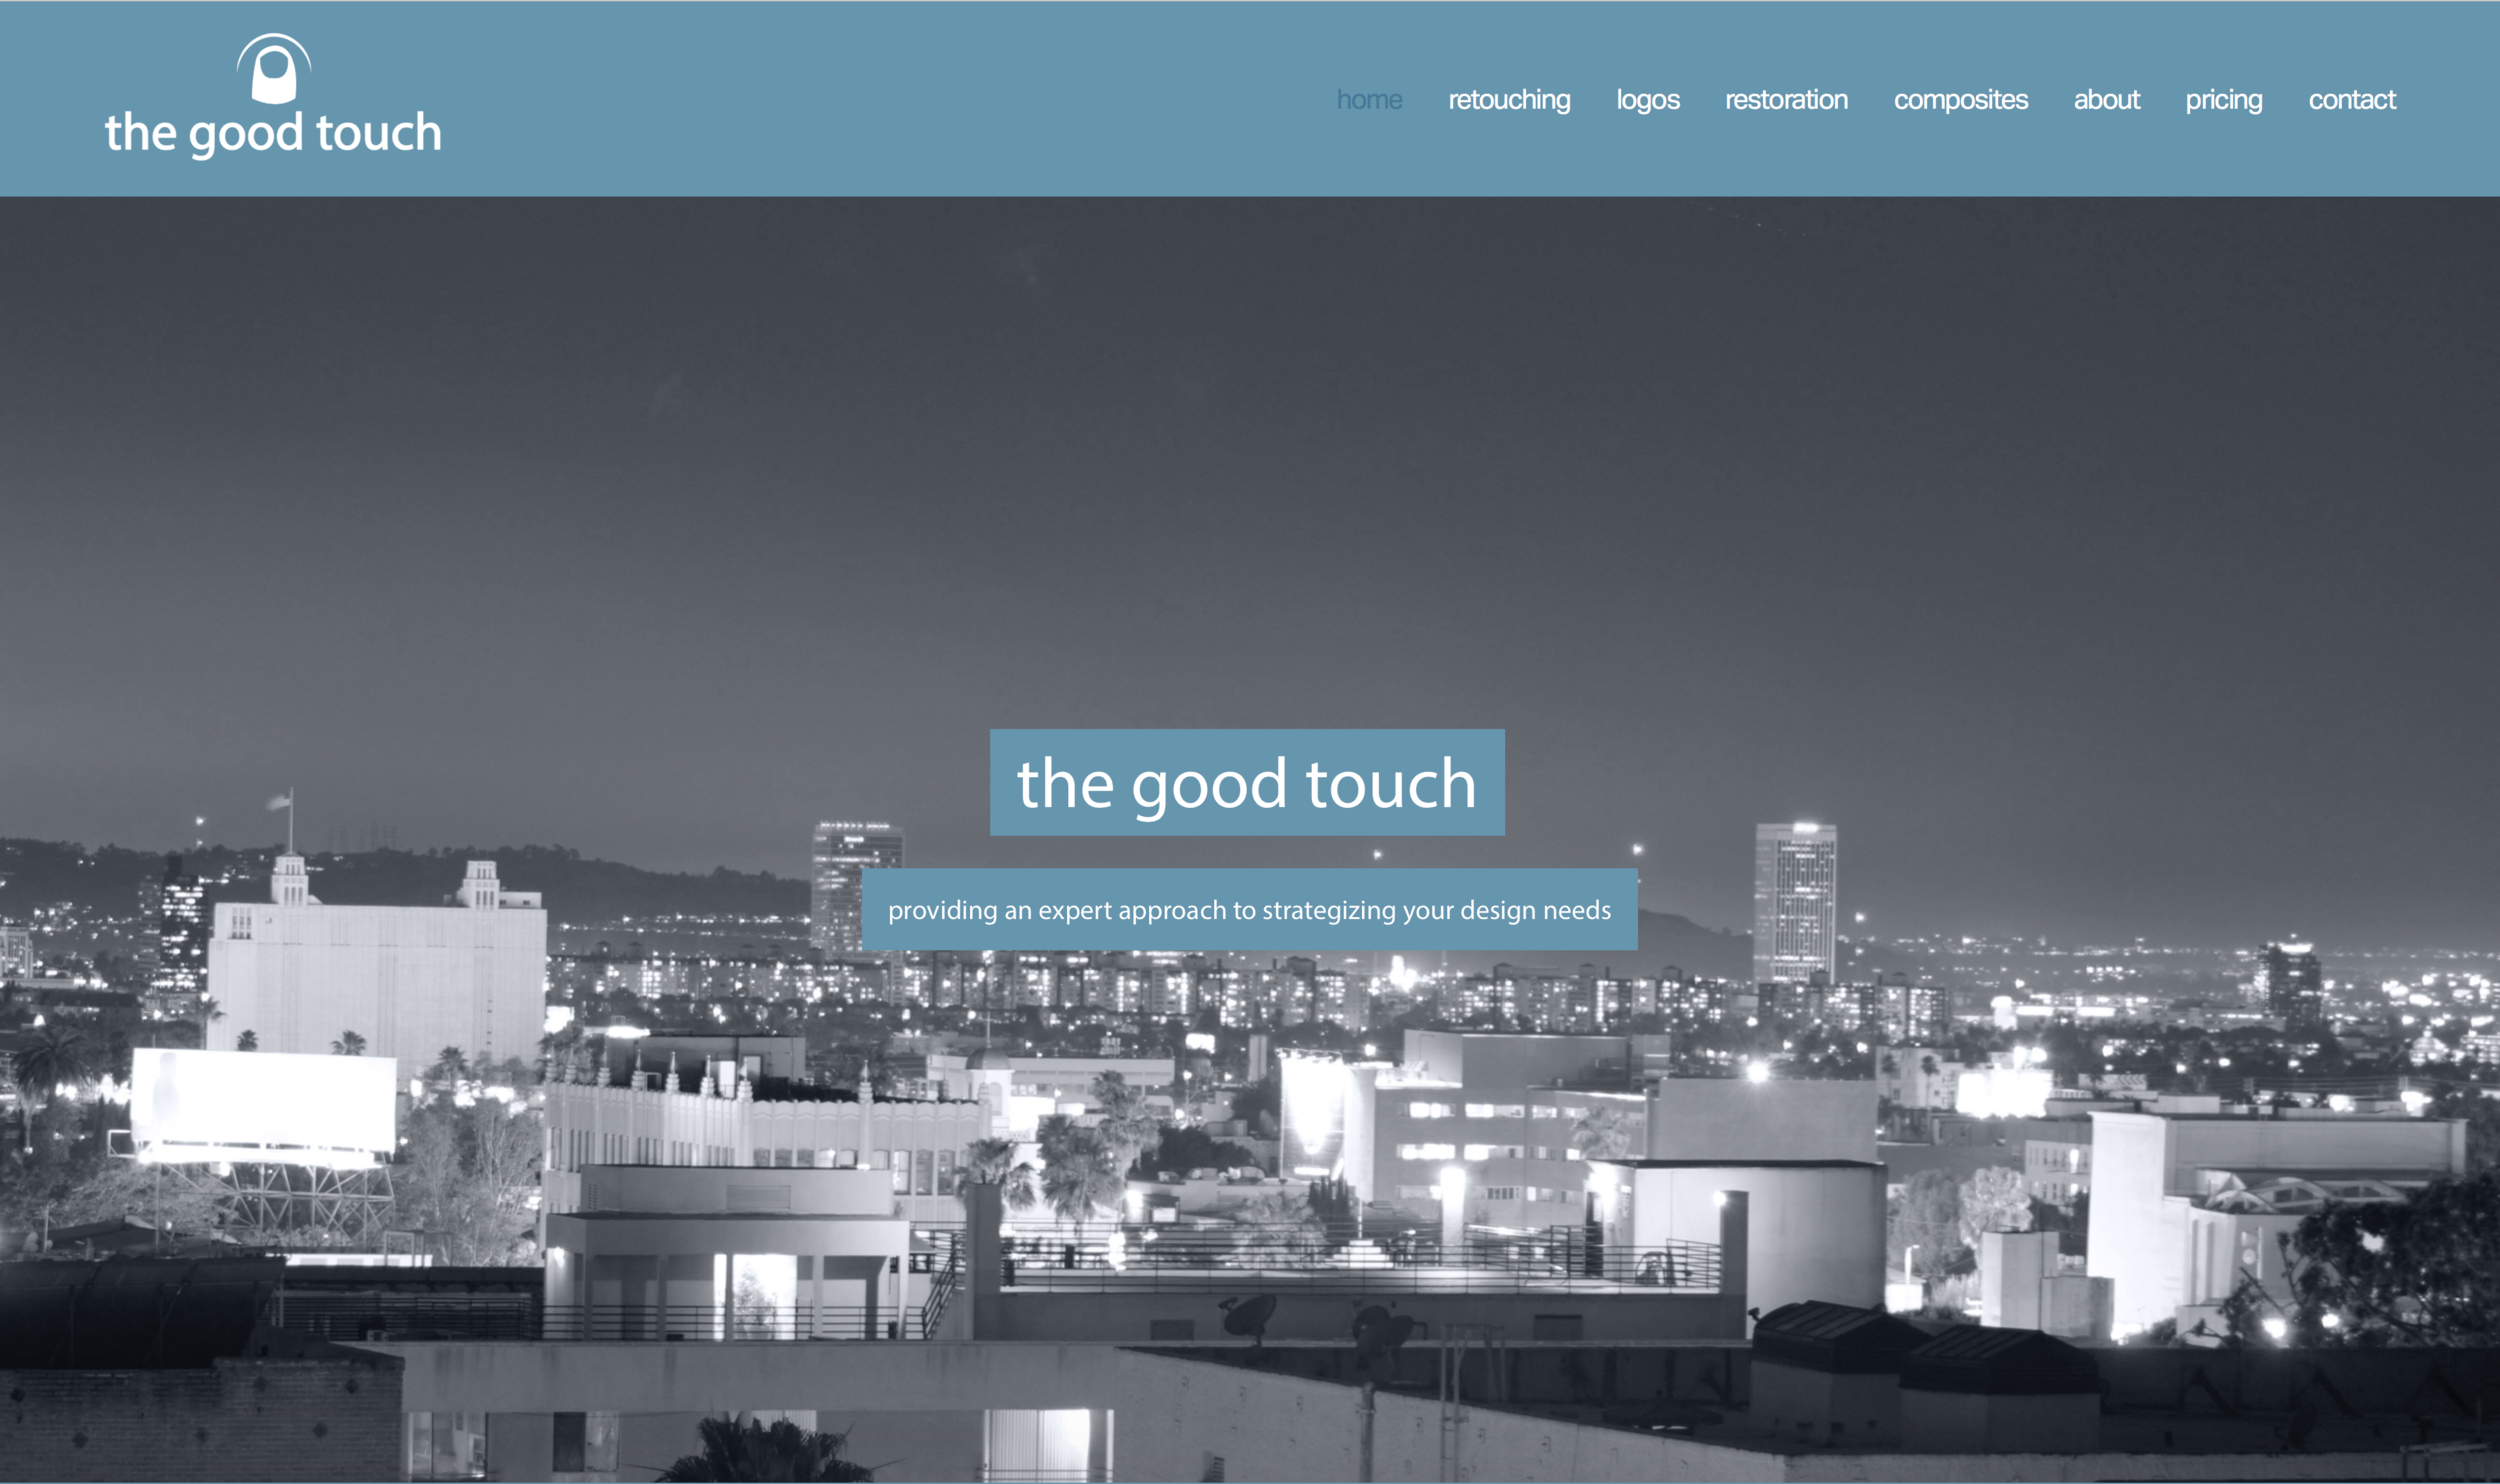 web development for the good touch business. graphic design, branding, logo design, photo manipulation